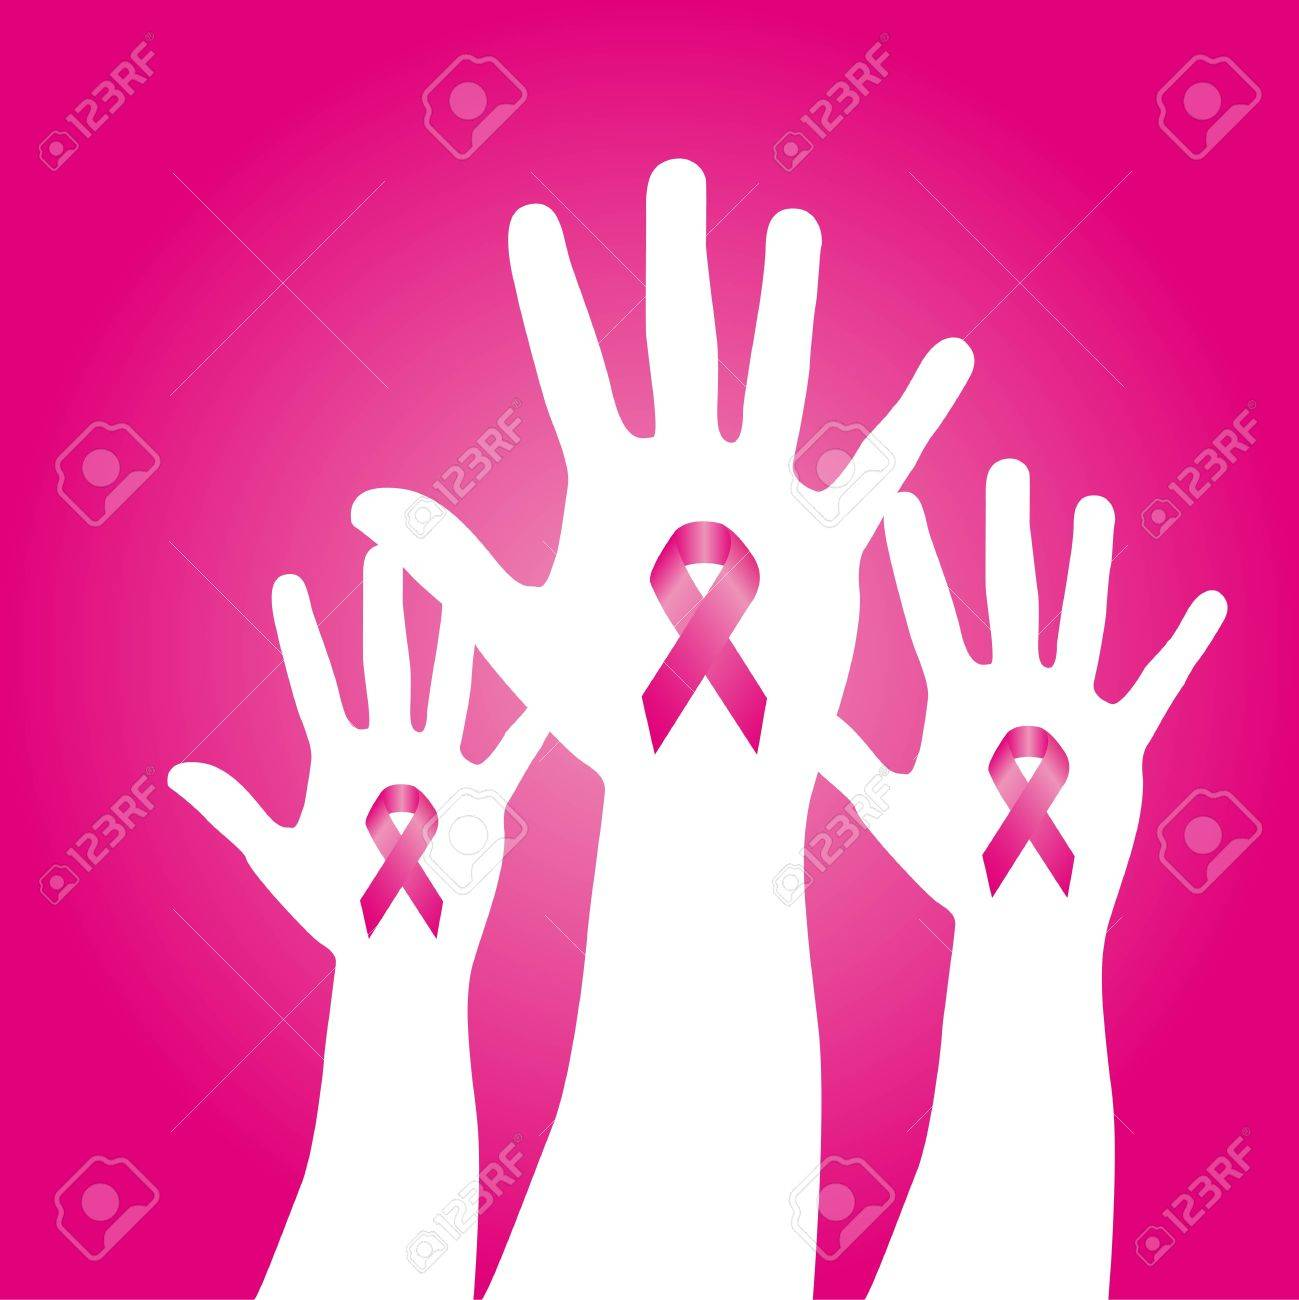 pink awareness ribbons over hands over pink background. Stock Vector - 12459562